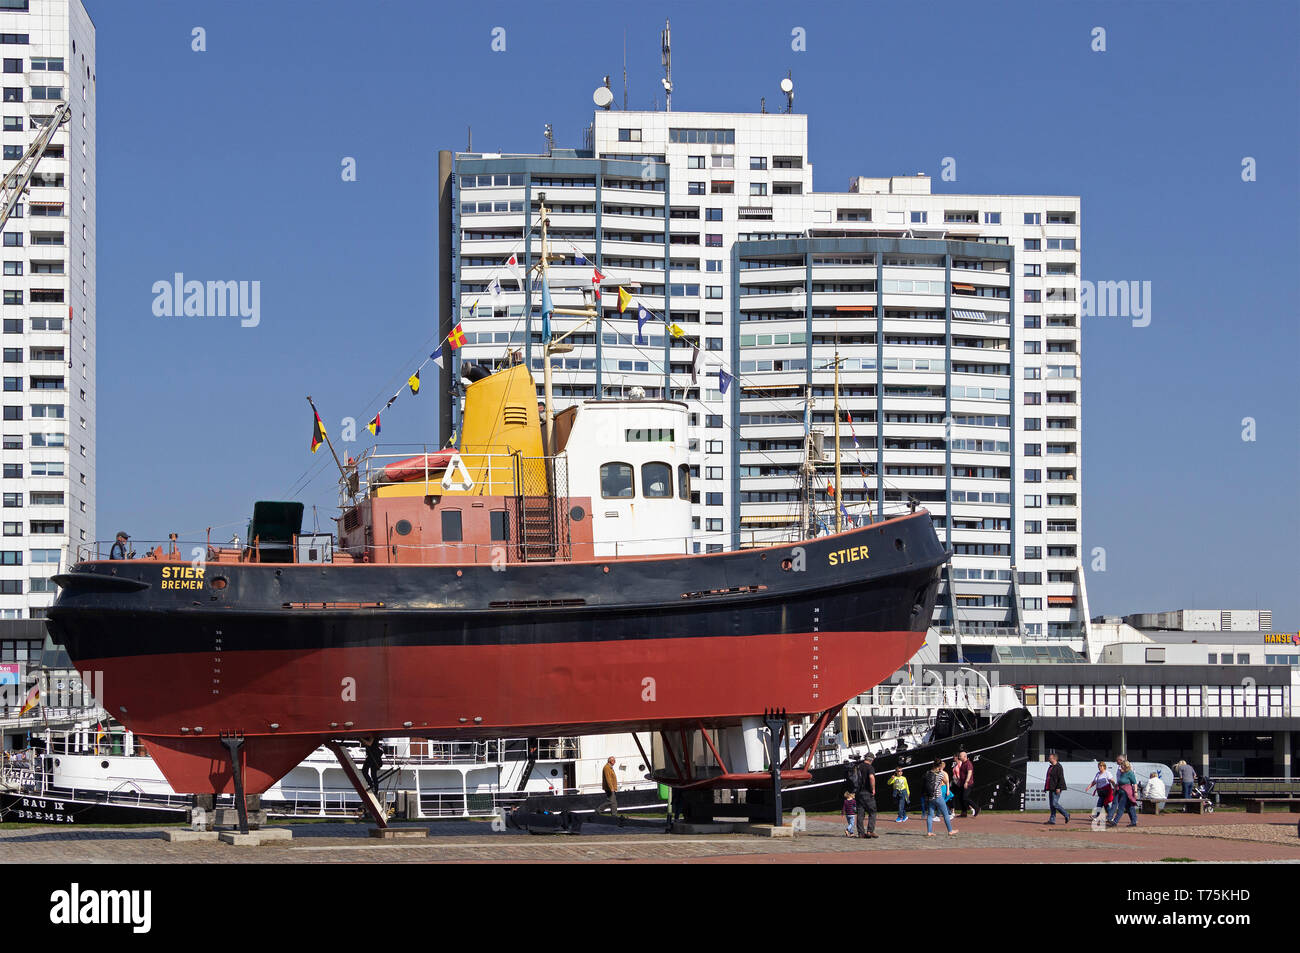 tugboat Stier at the museum-harbour and Columbus Center, Bremerhaven, Bremen, Germany - Stock Image